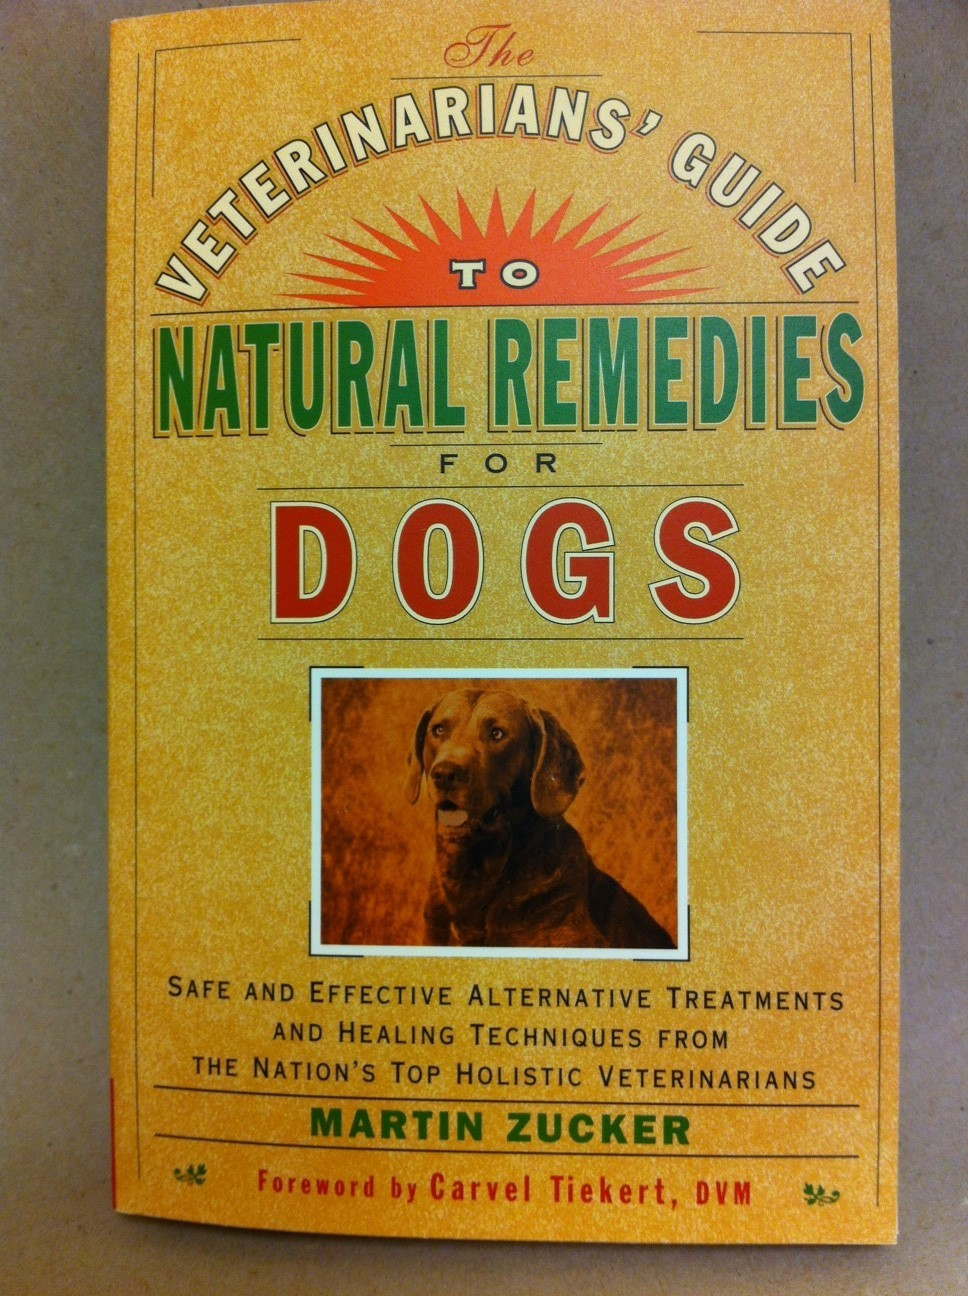 A Veterinarian's Guide to Natural Remedies for Dogs